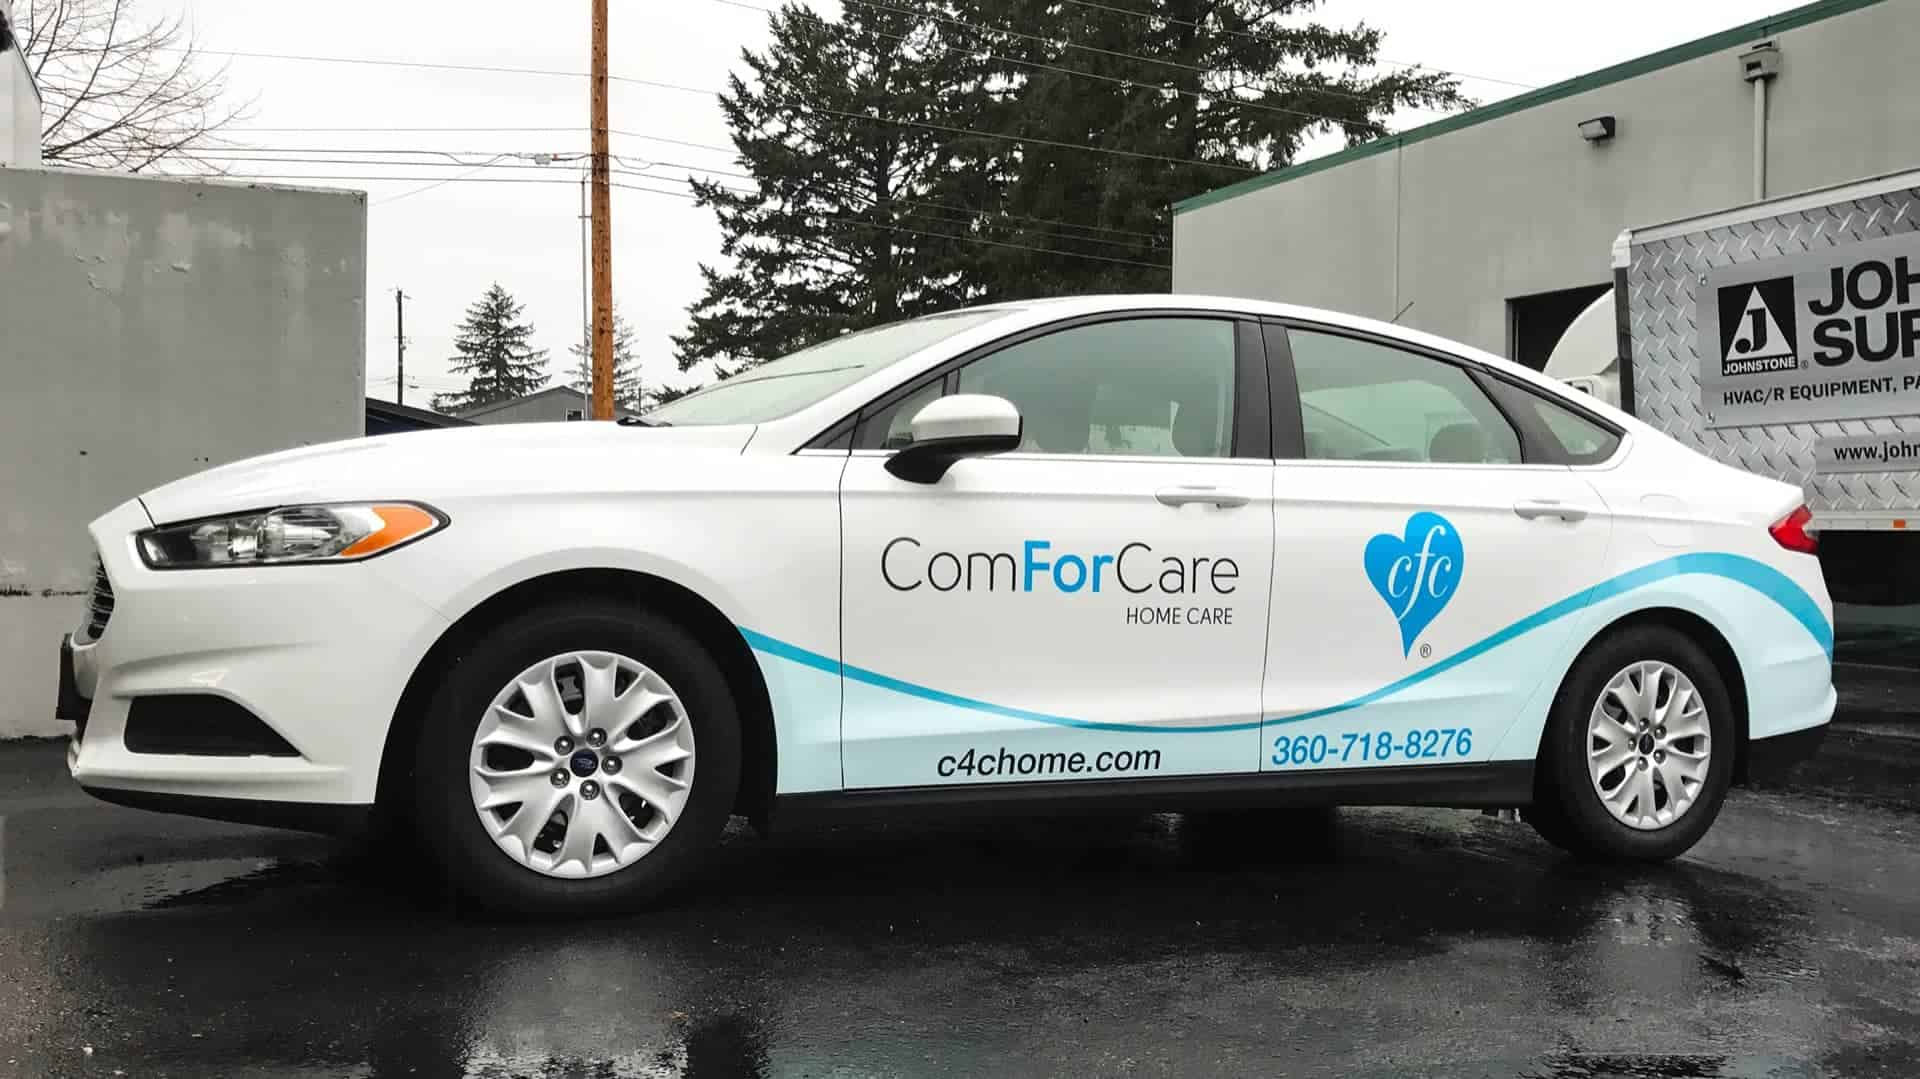 Partial Wrap for ComforCare on a 2016 Ford Fusion